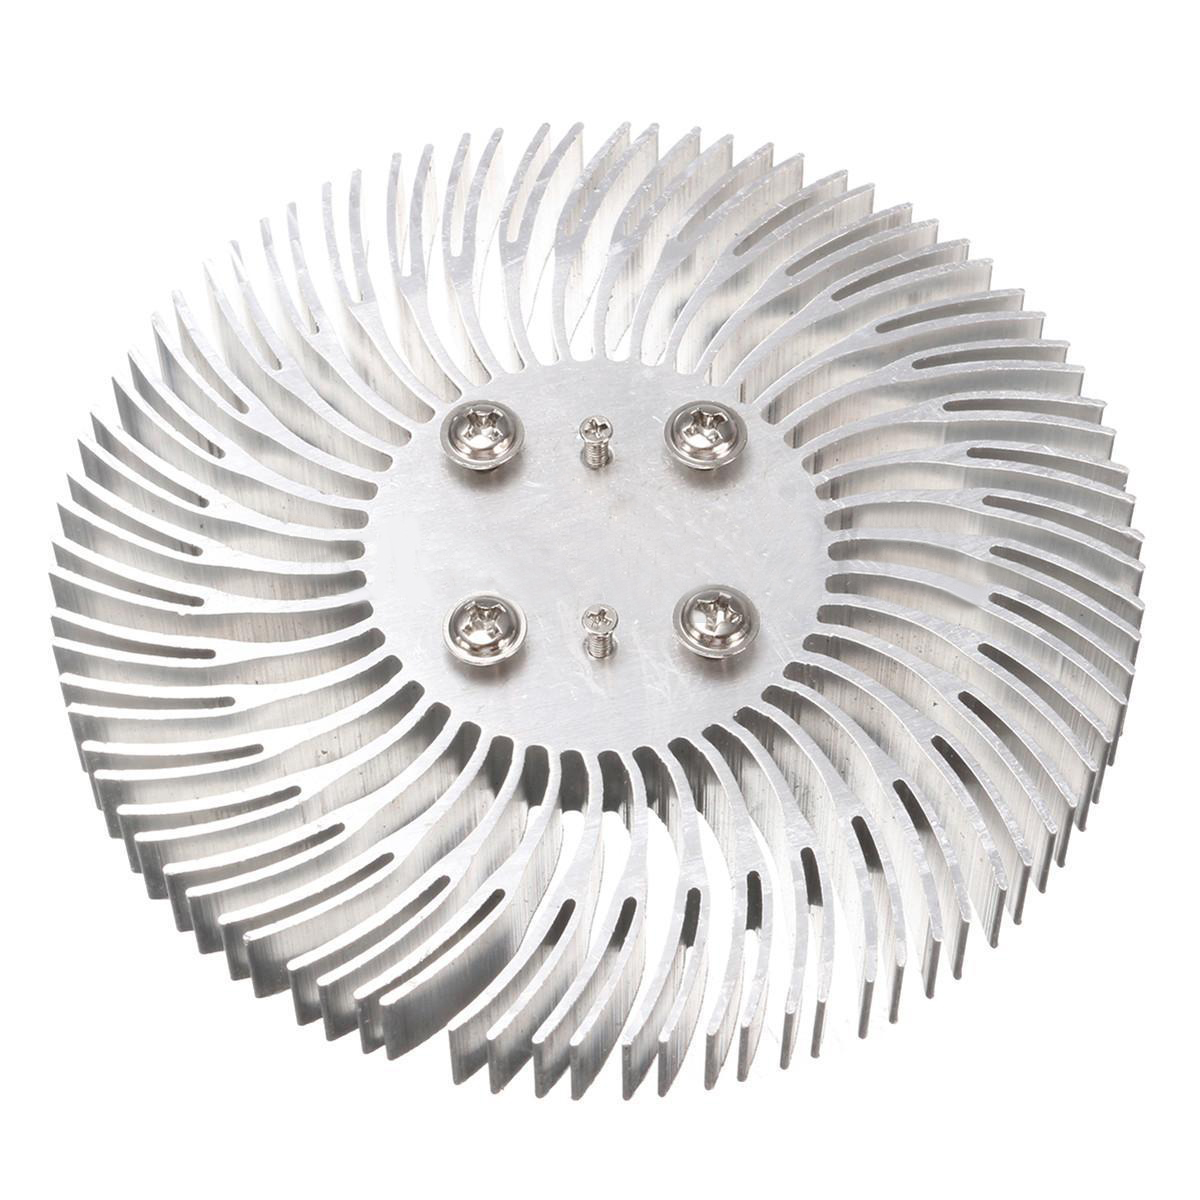 1pc Mayitr Round Spiral Aluminum Heatsink Cooler Led Heat Sink Radiator 90*10mm For 10W High Power LED Light Lamp 10 pcs black aluminum cooler radiator heat sink heatsink 20mm x 20mm x 10mm